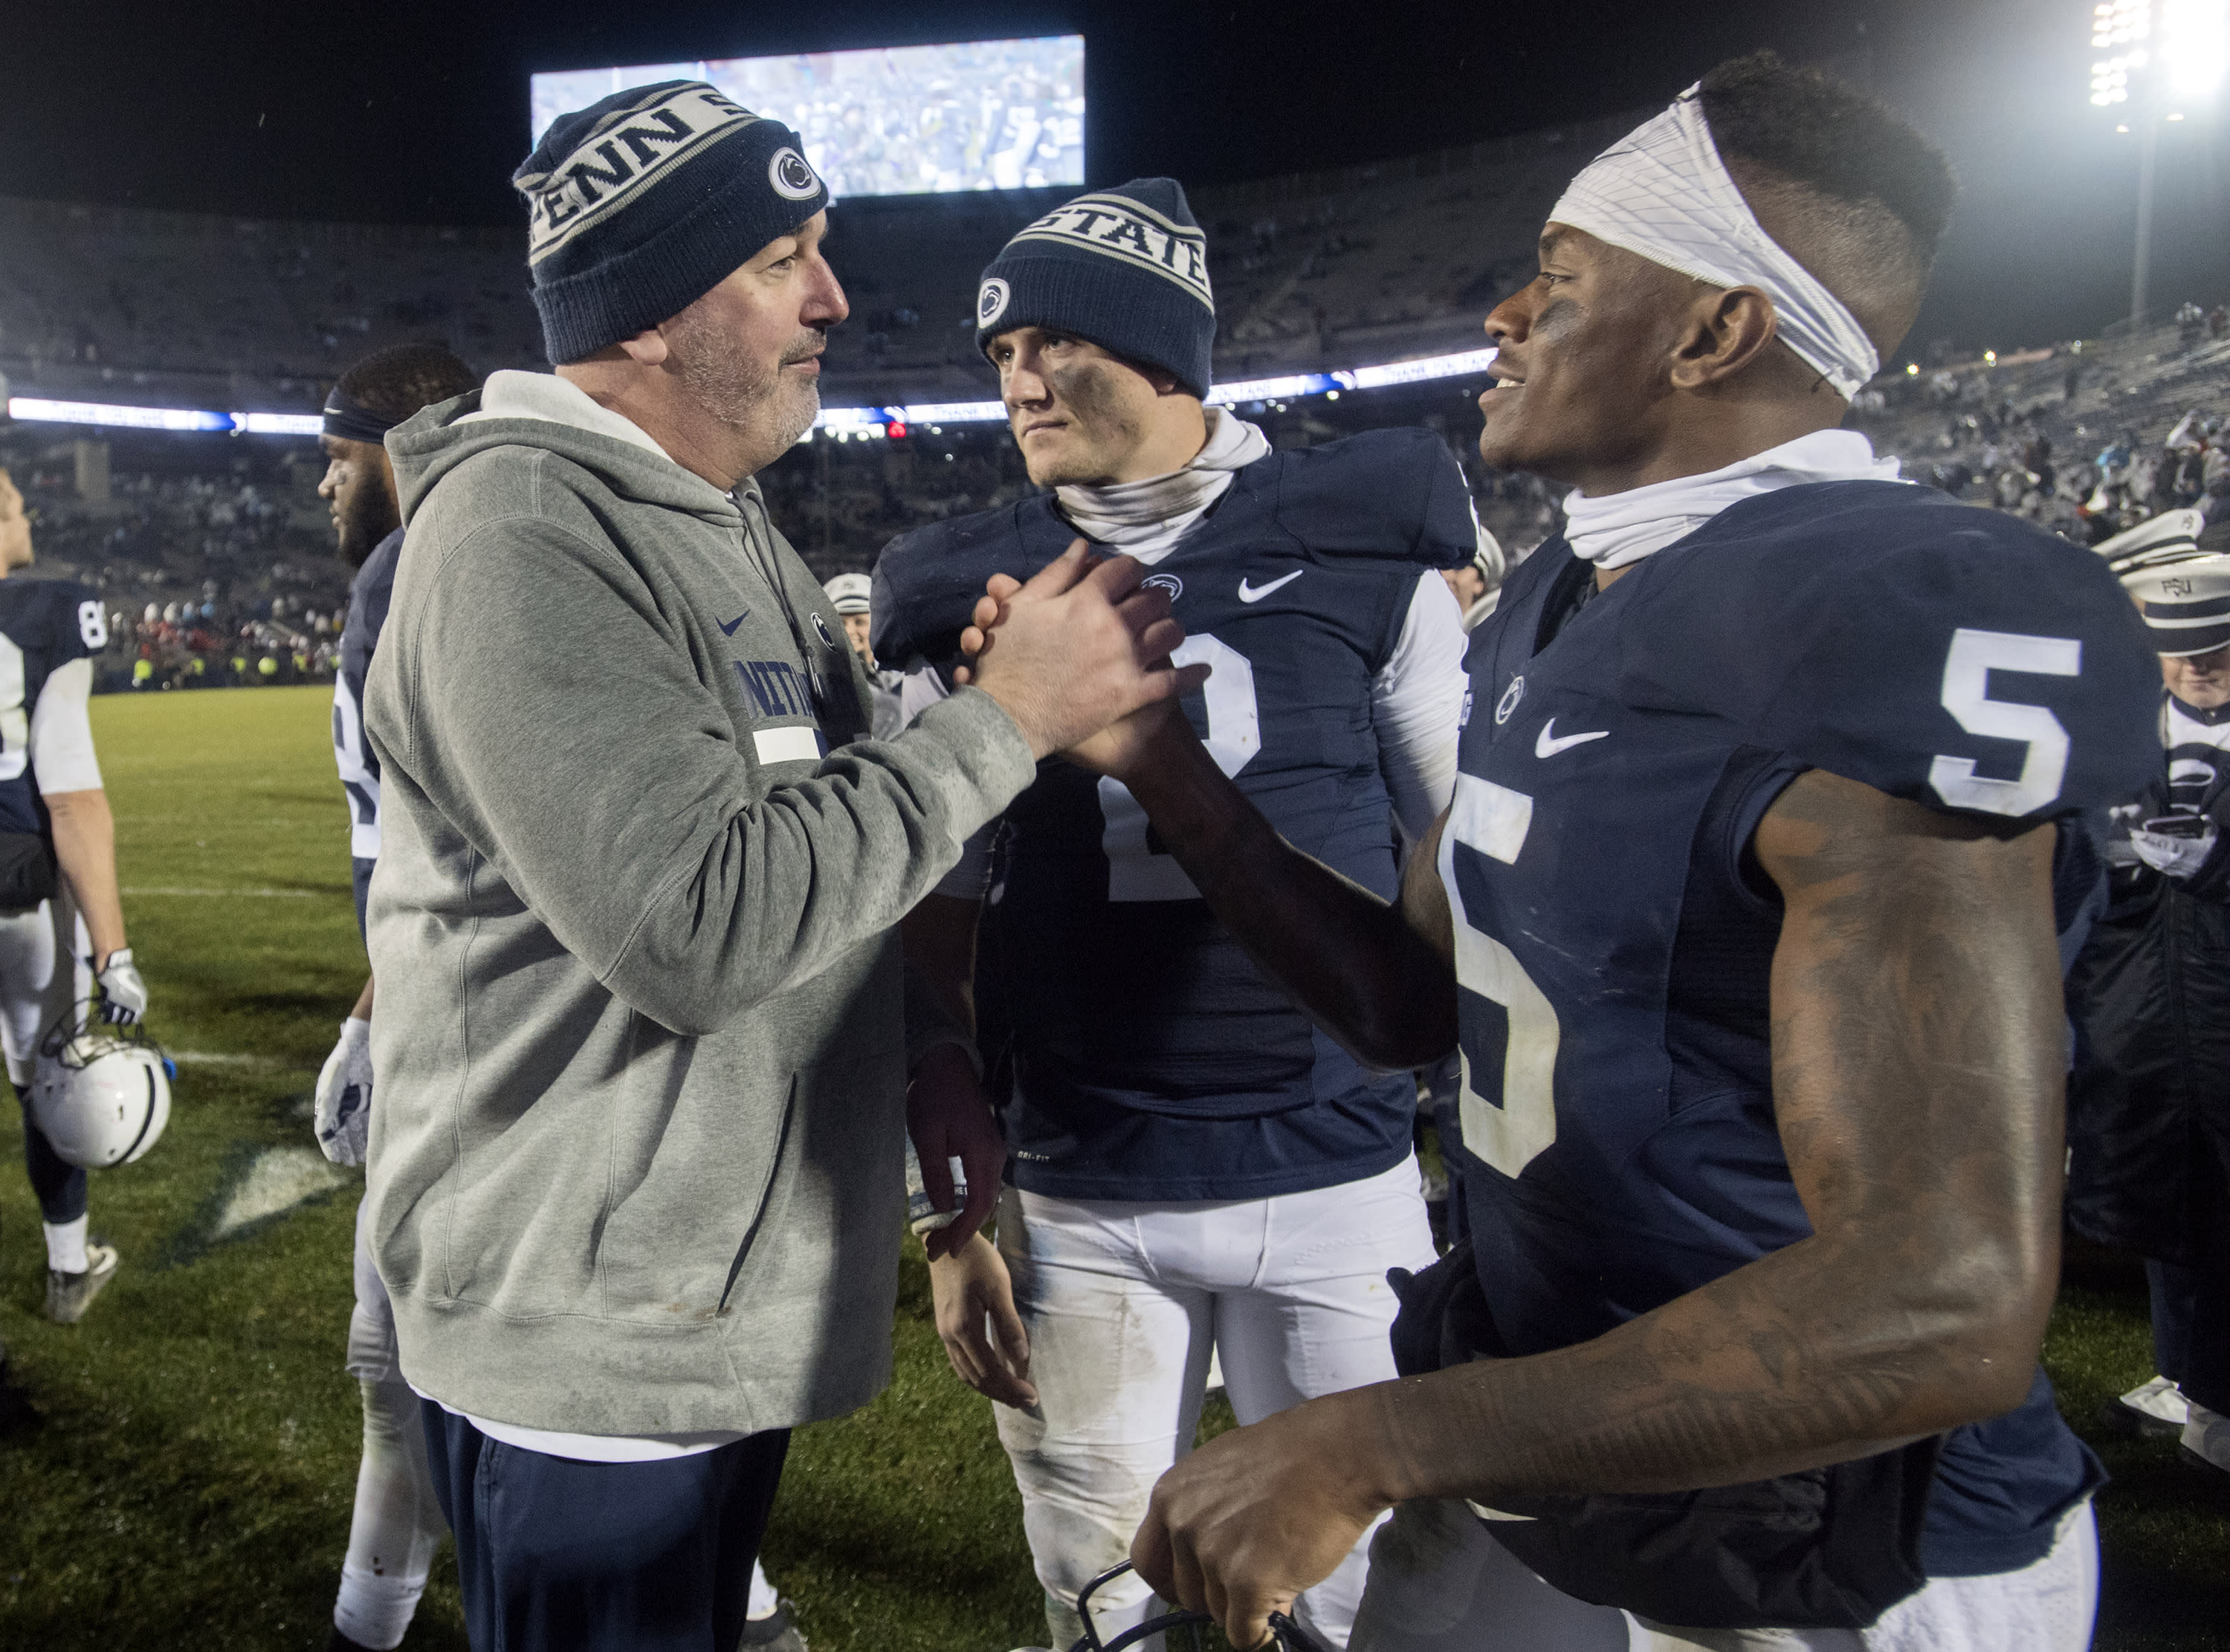 Joe Moorhead Asks If Player Knows His Ring Size Upon